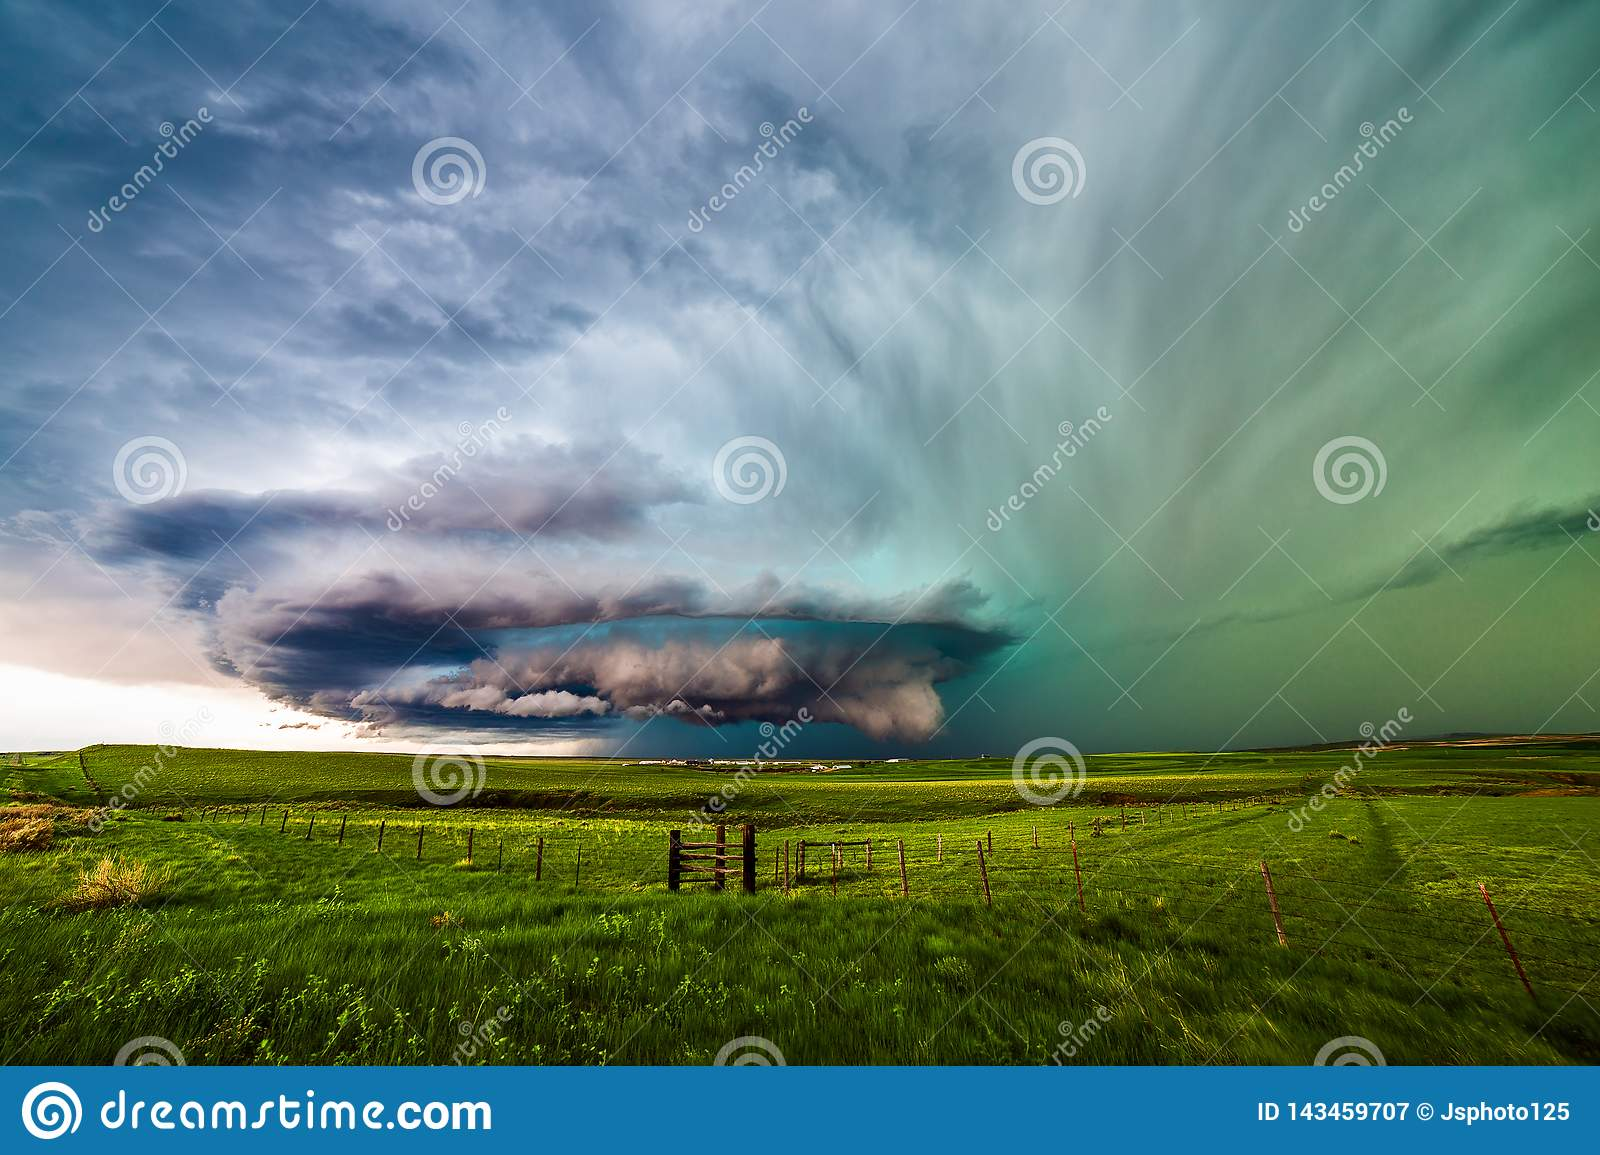 Supercell thunderstorm over a field